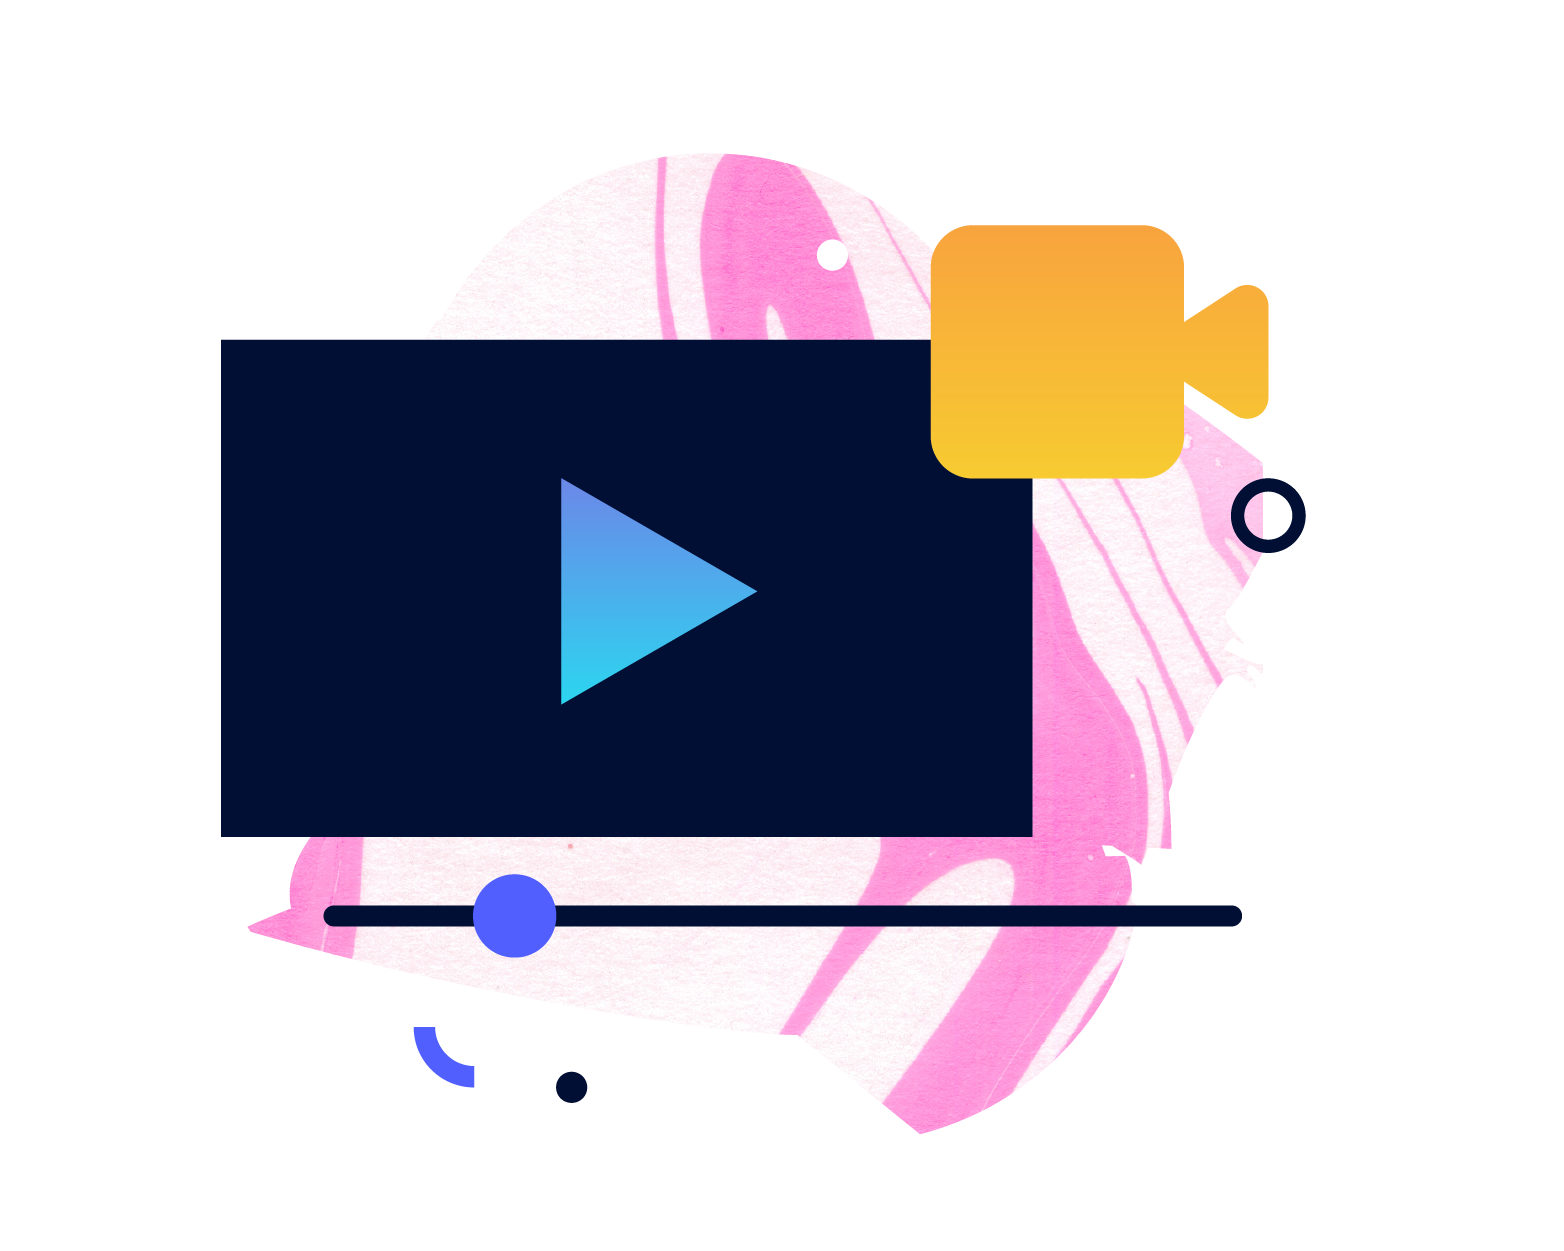 Integrating Content: Adding videos to your creations